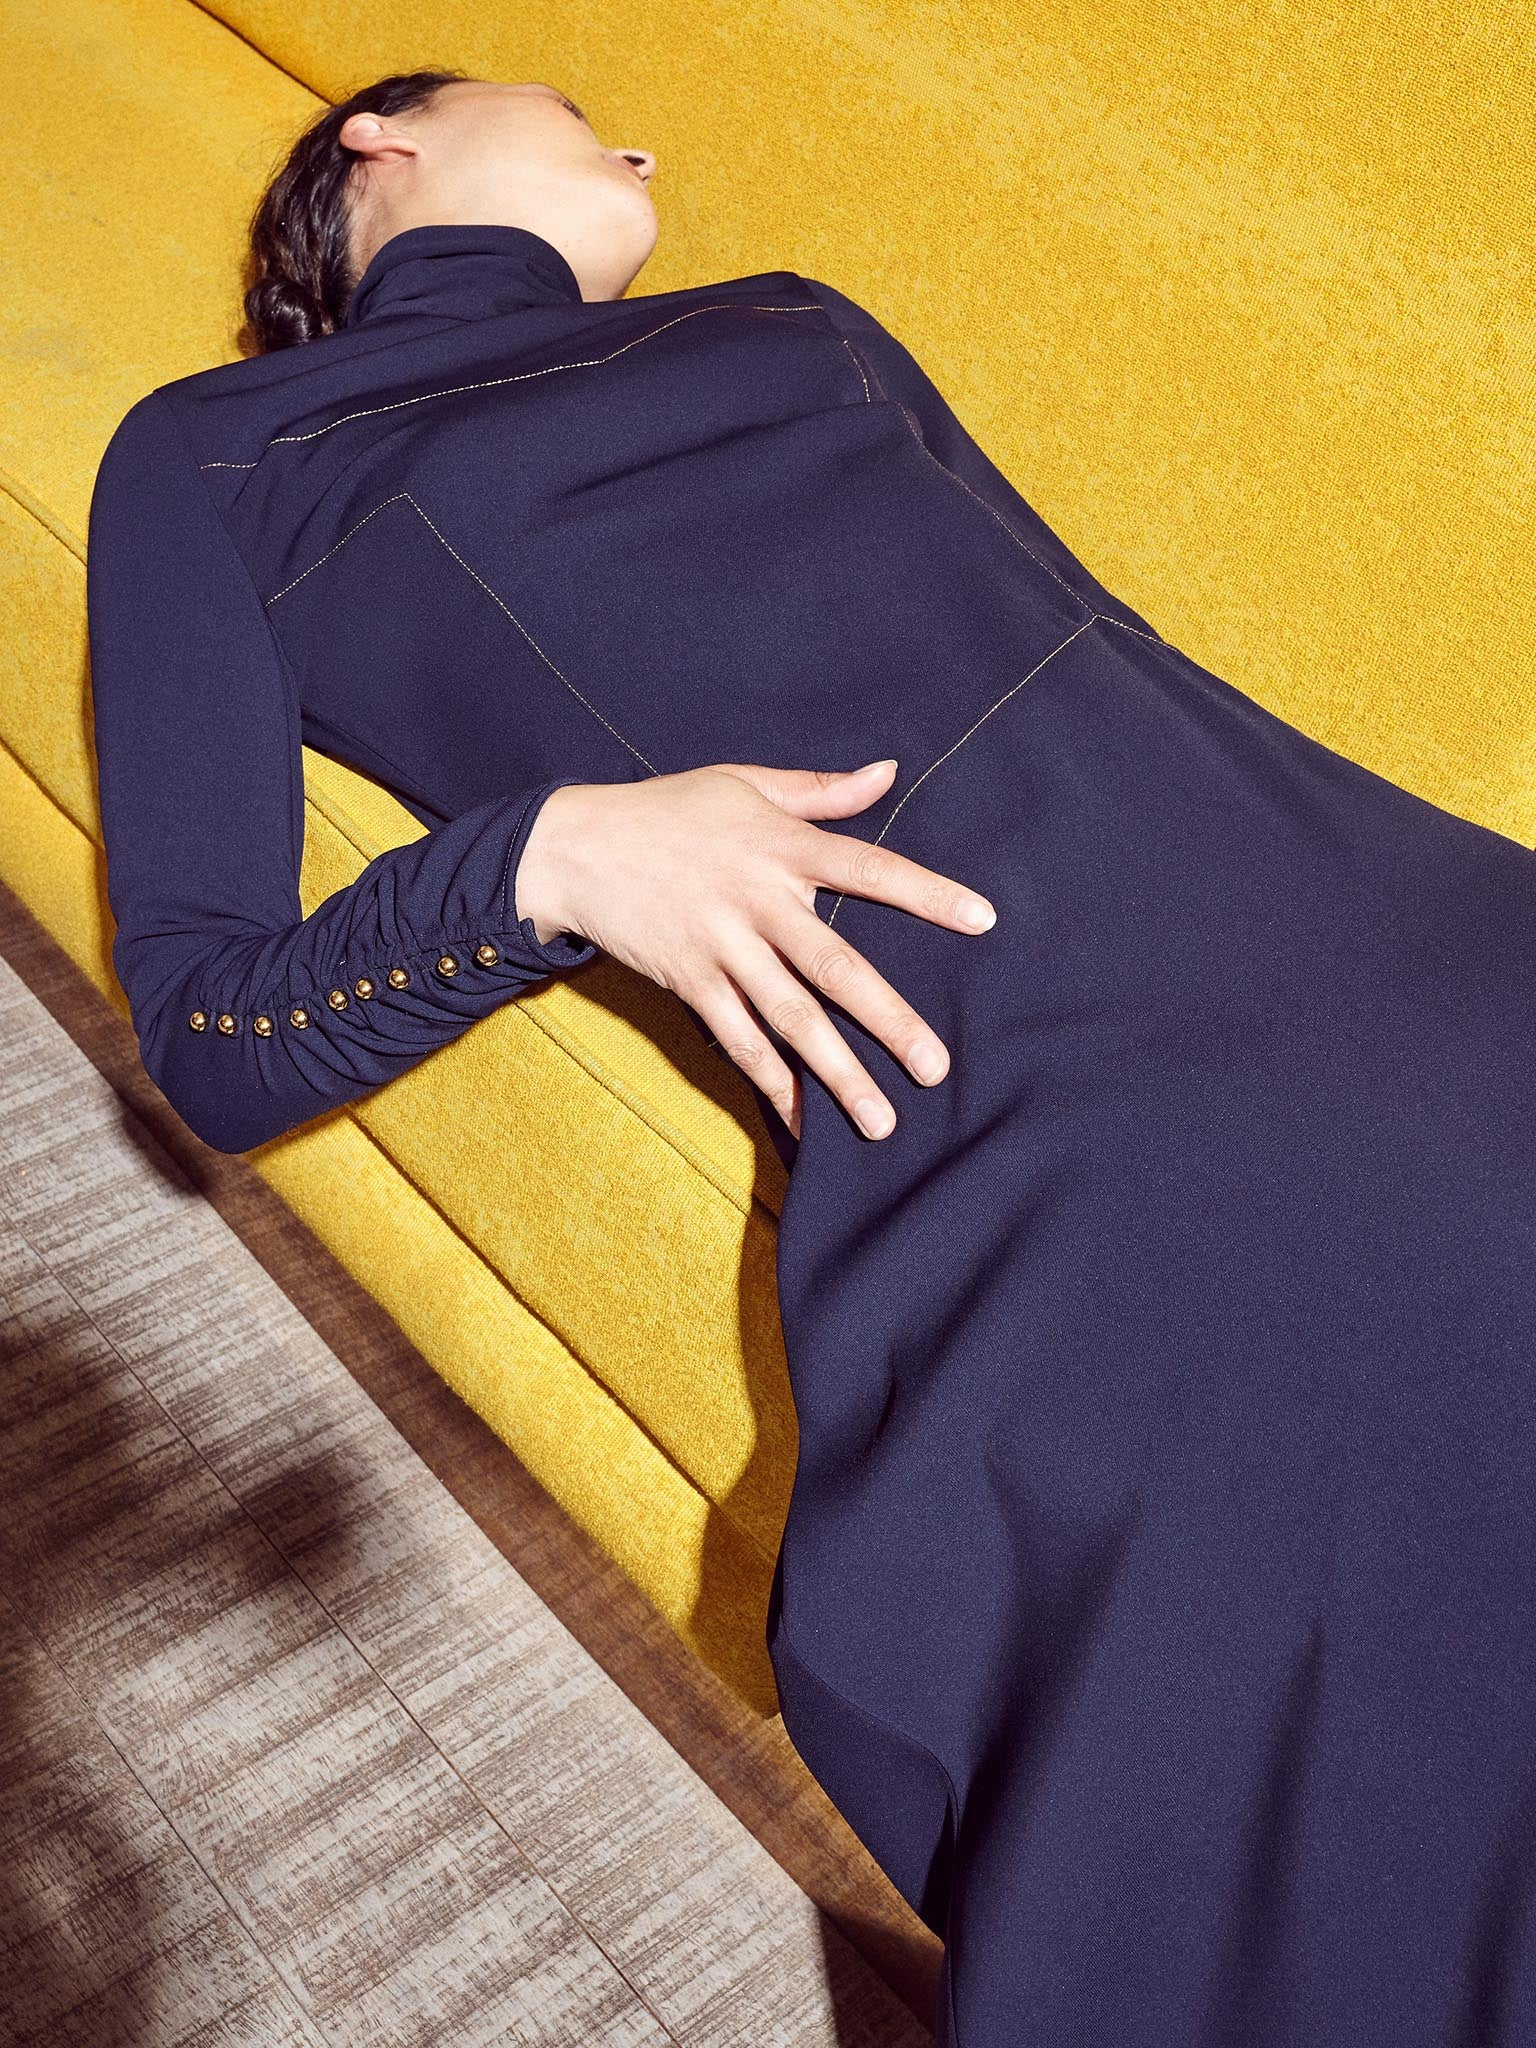 Model wearing navy women's dress with gold thread